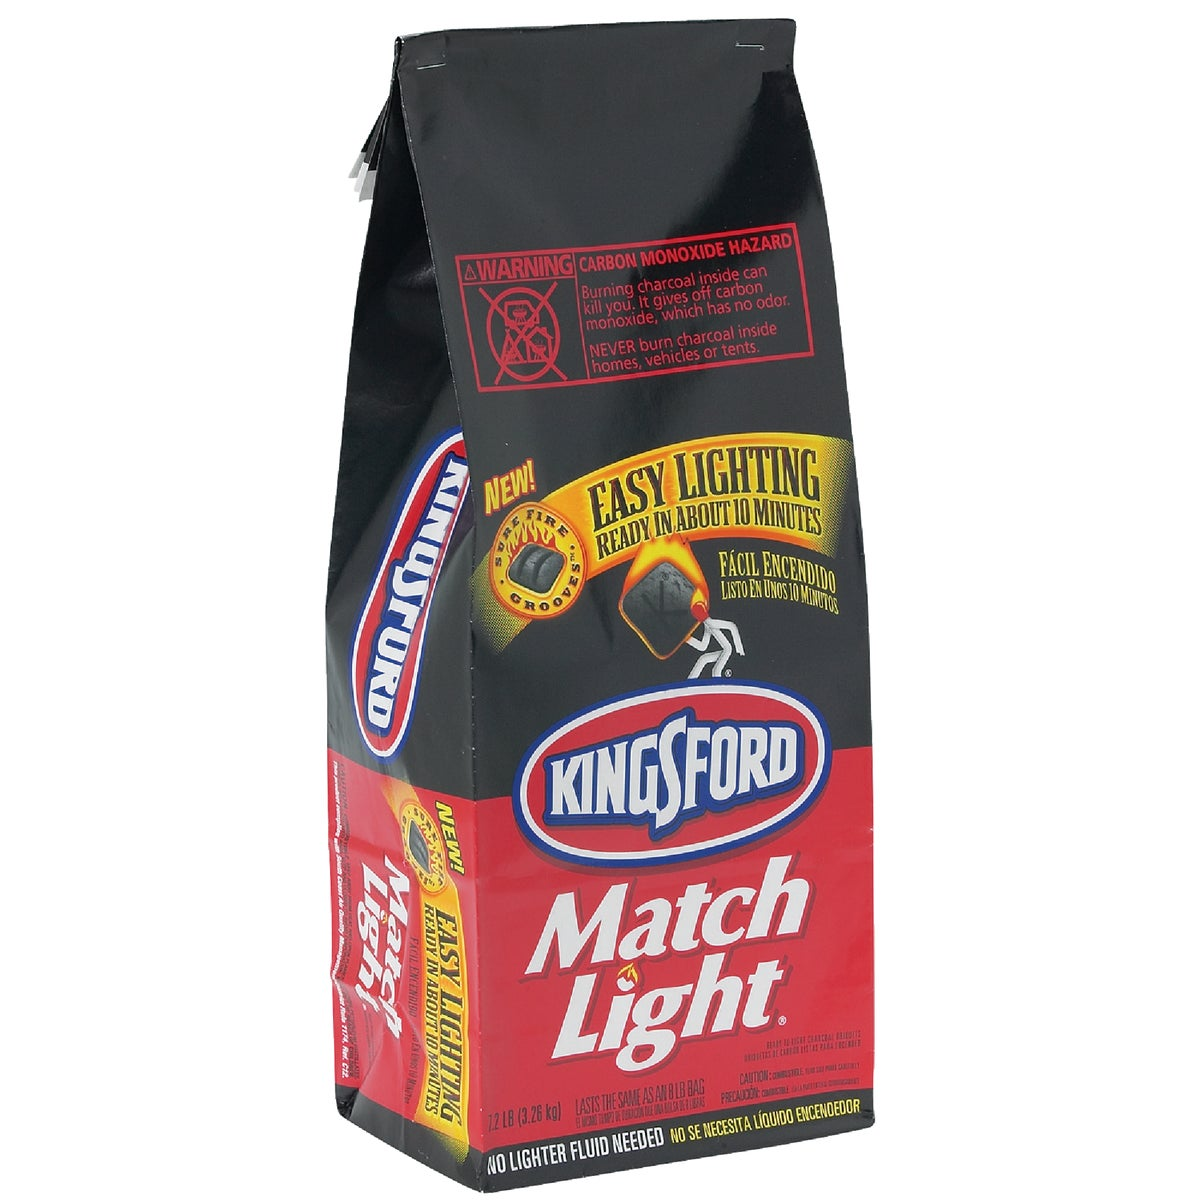 12.5LB MATCHLGHT BRIQUET - 30501 by Clorox/ Kingsford